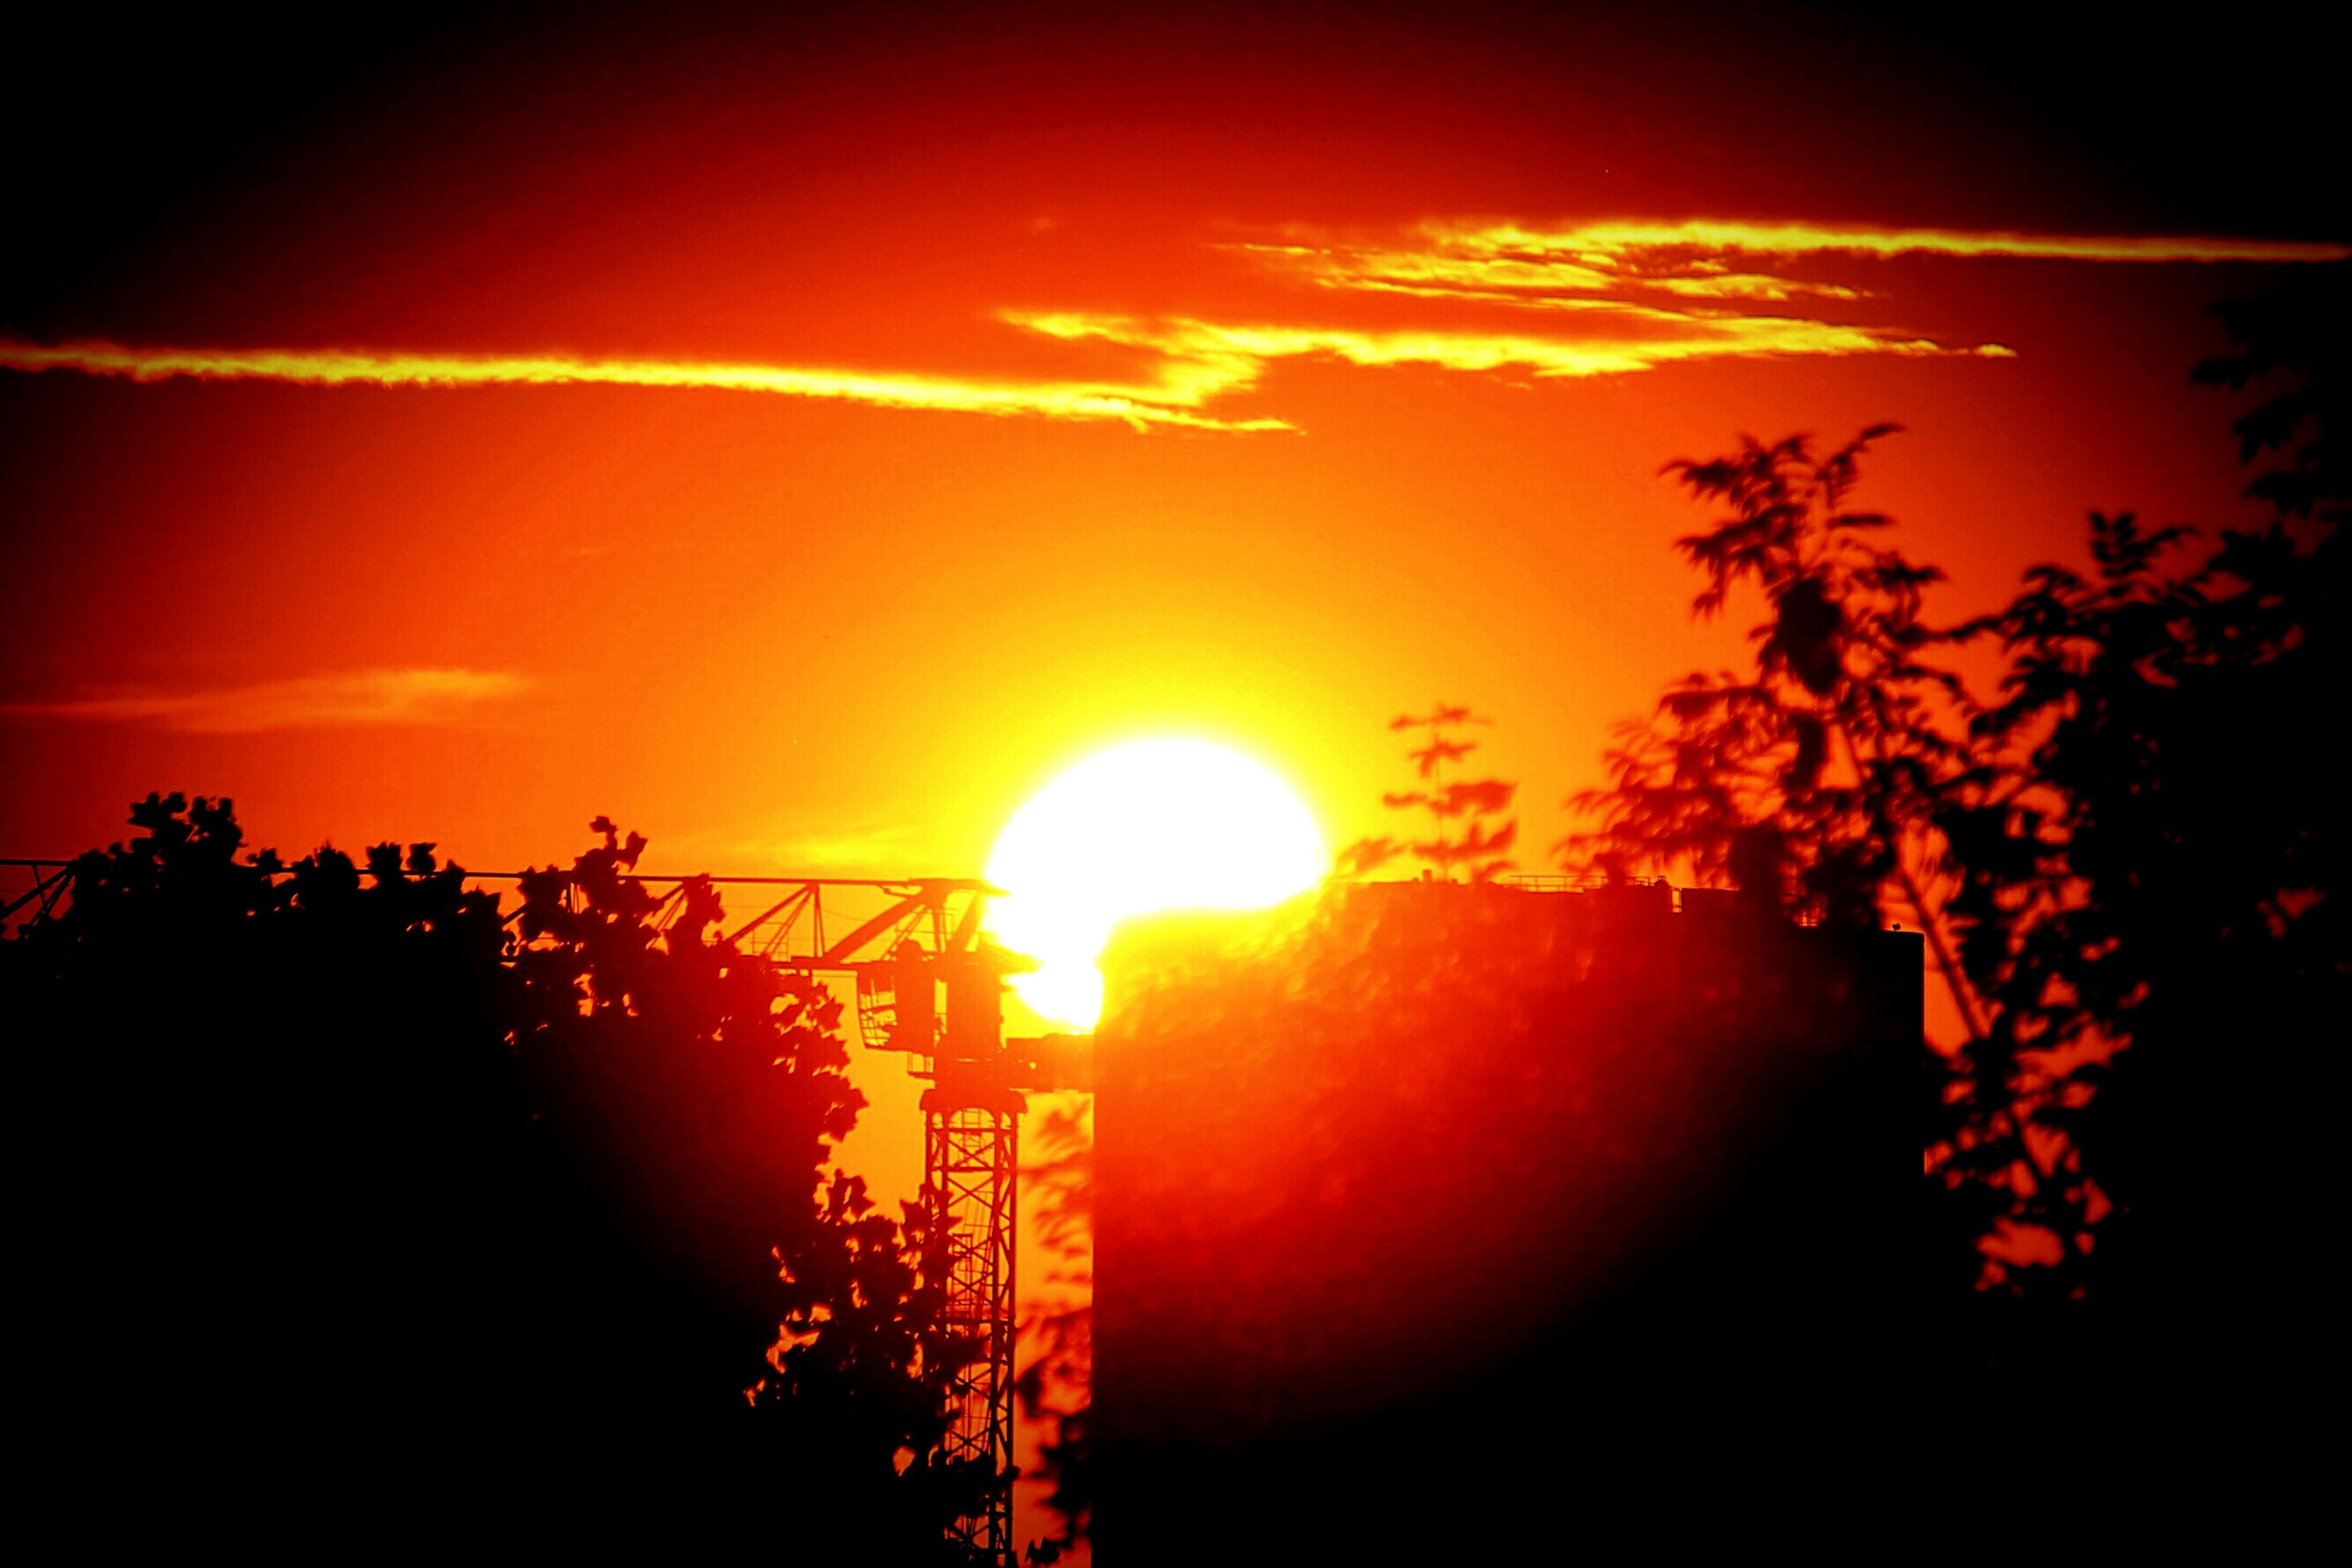 sunset, sun, orange color, silhouette, tree, sunlight, nature, no people, beauty in nature, outdoors, sky, scenics, tranquility, growth, close-up, day